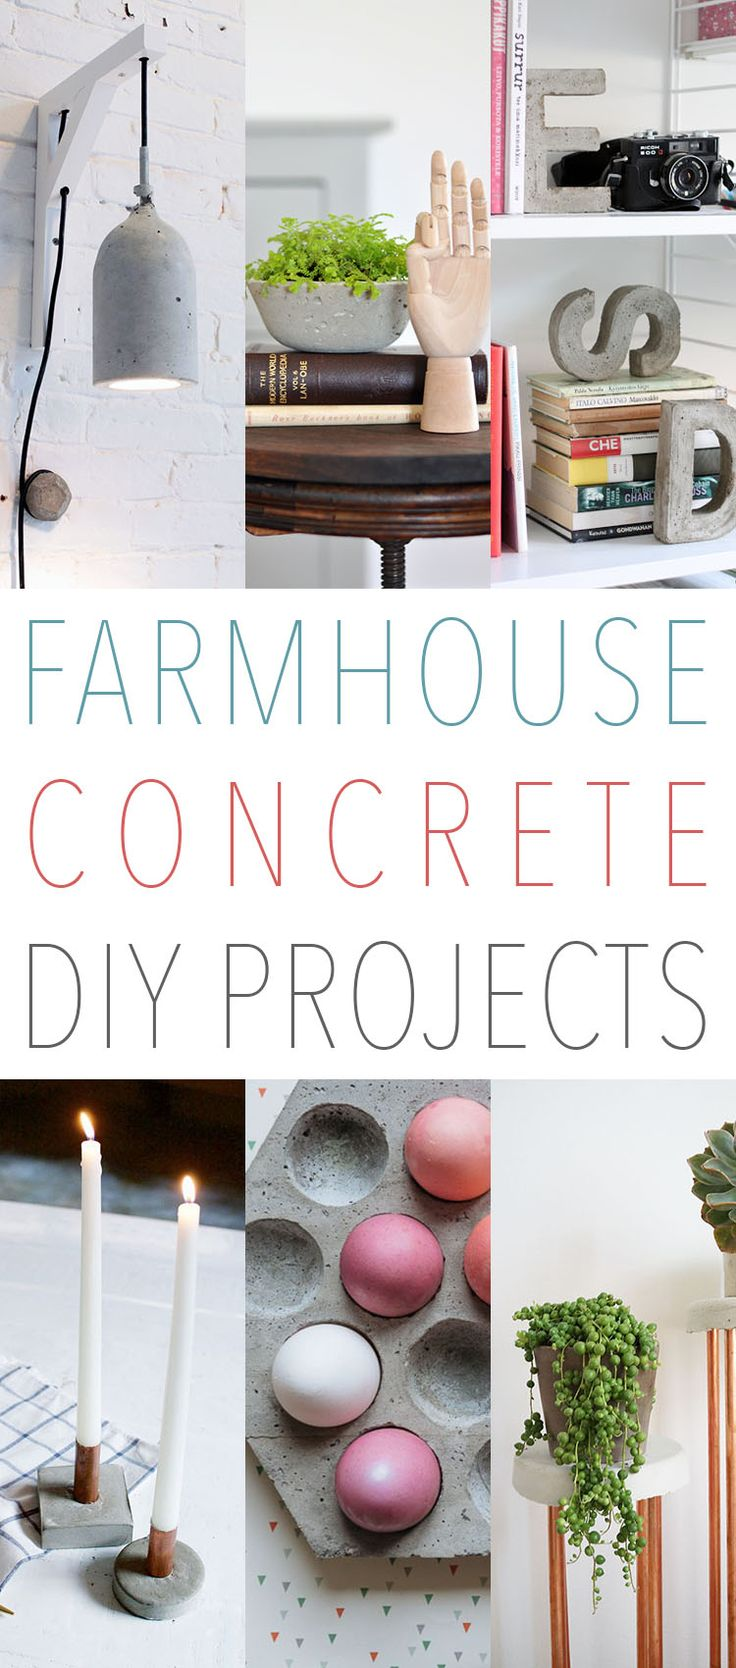 Farmhouse DIY Concrete Projects That Are Awesome